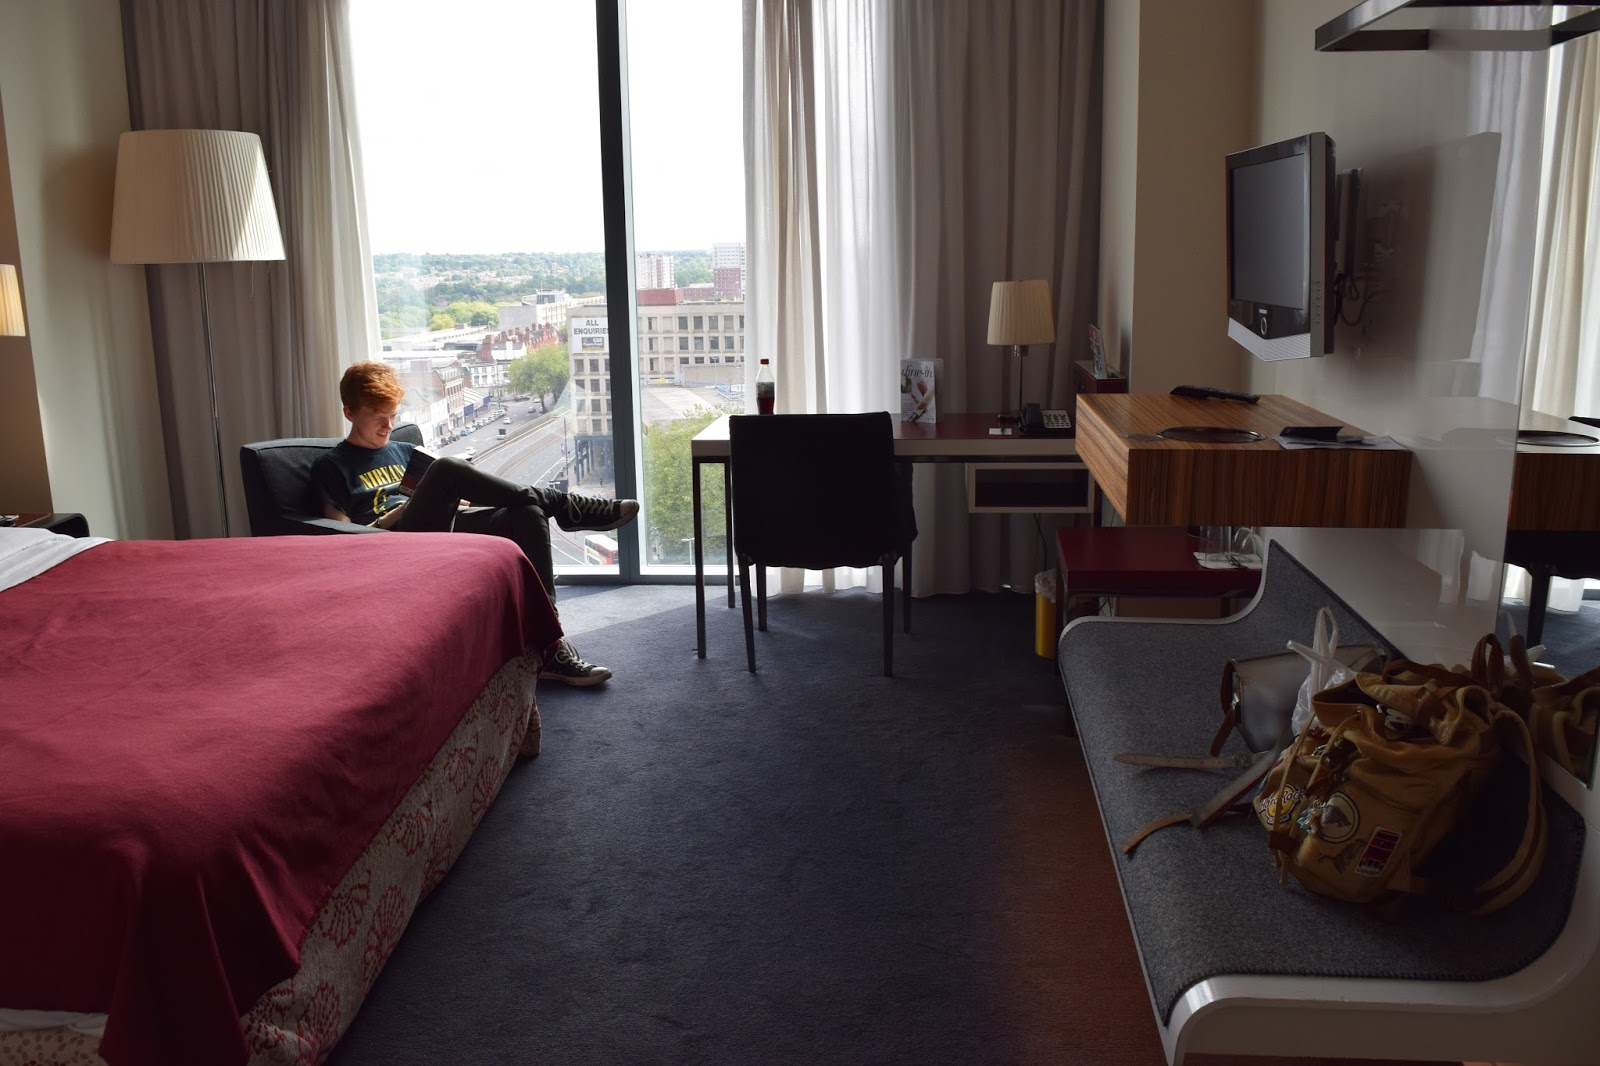 a view of the hotel room.